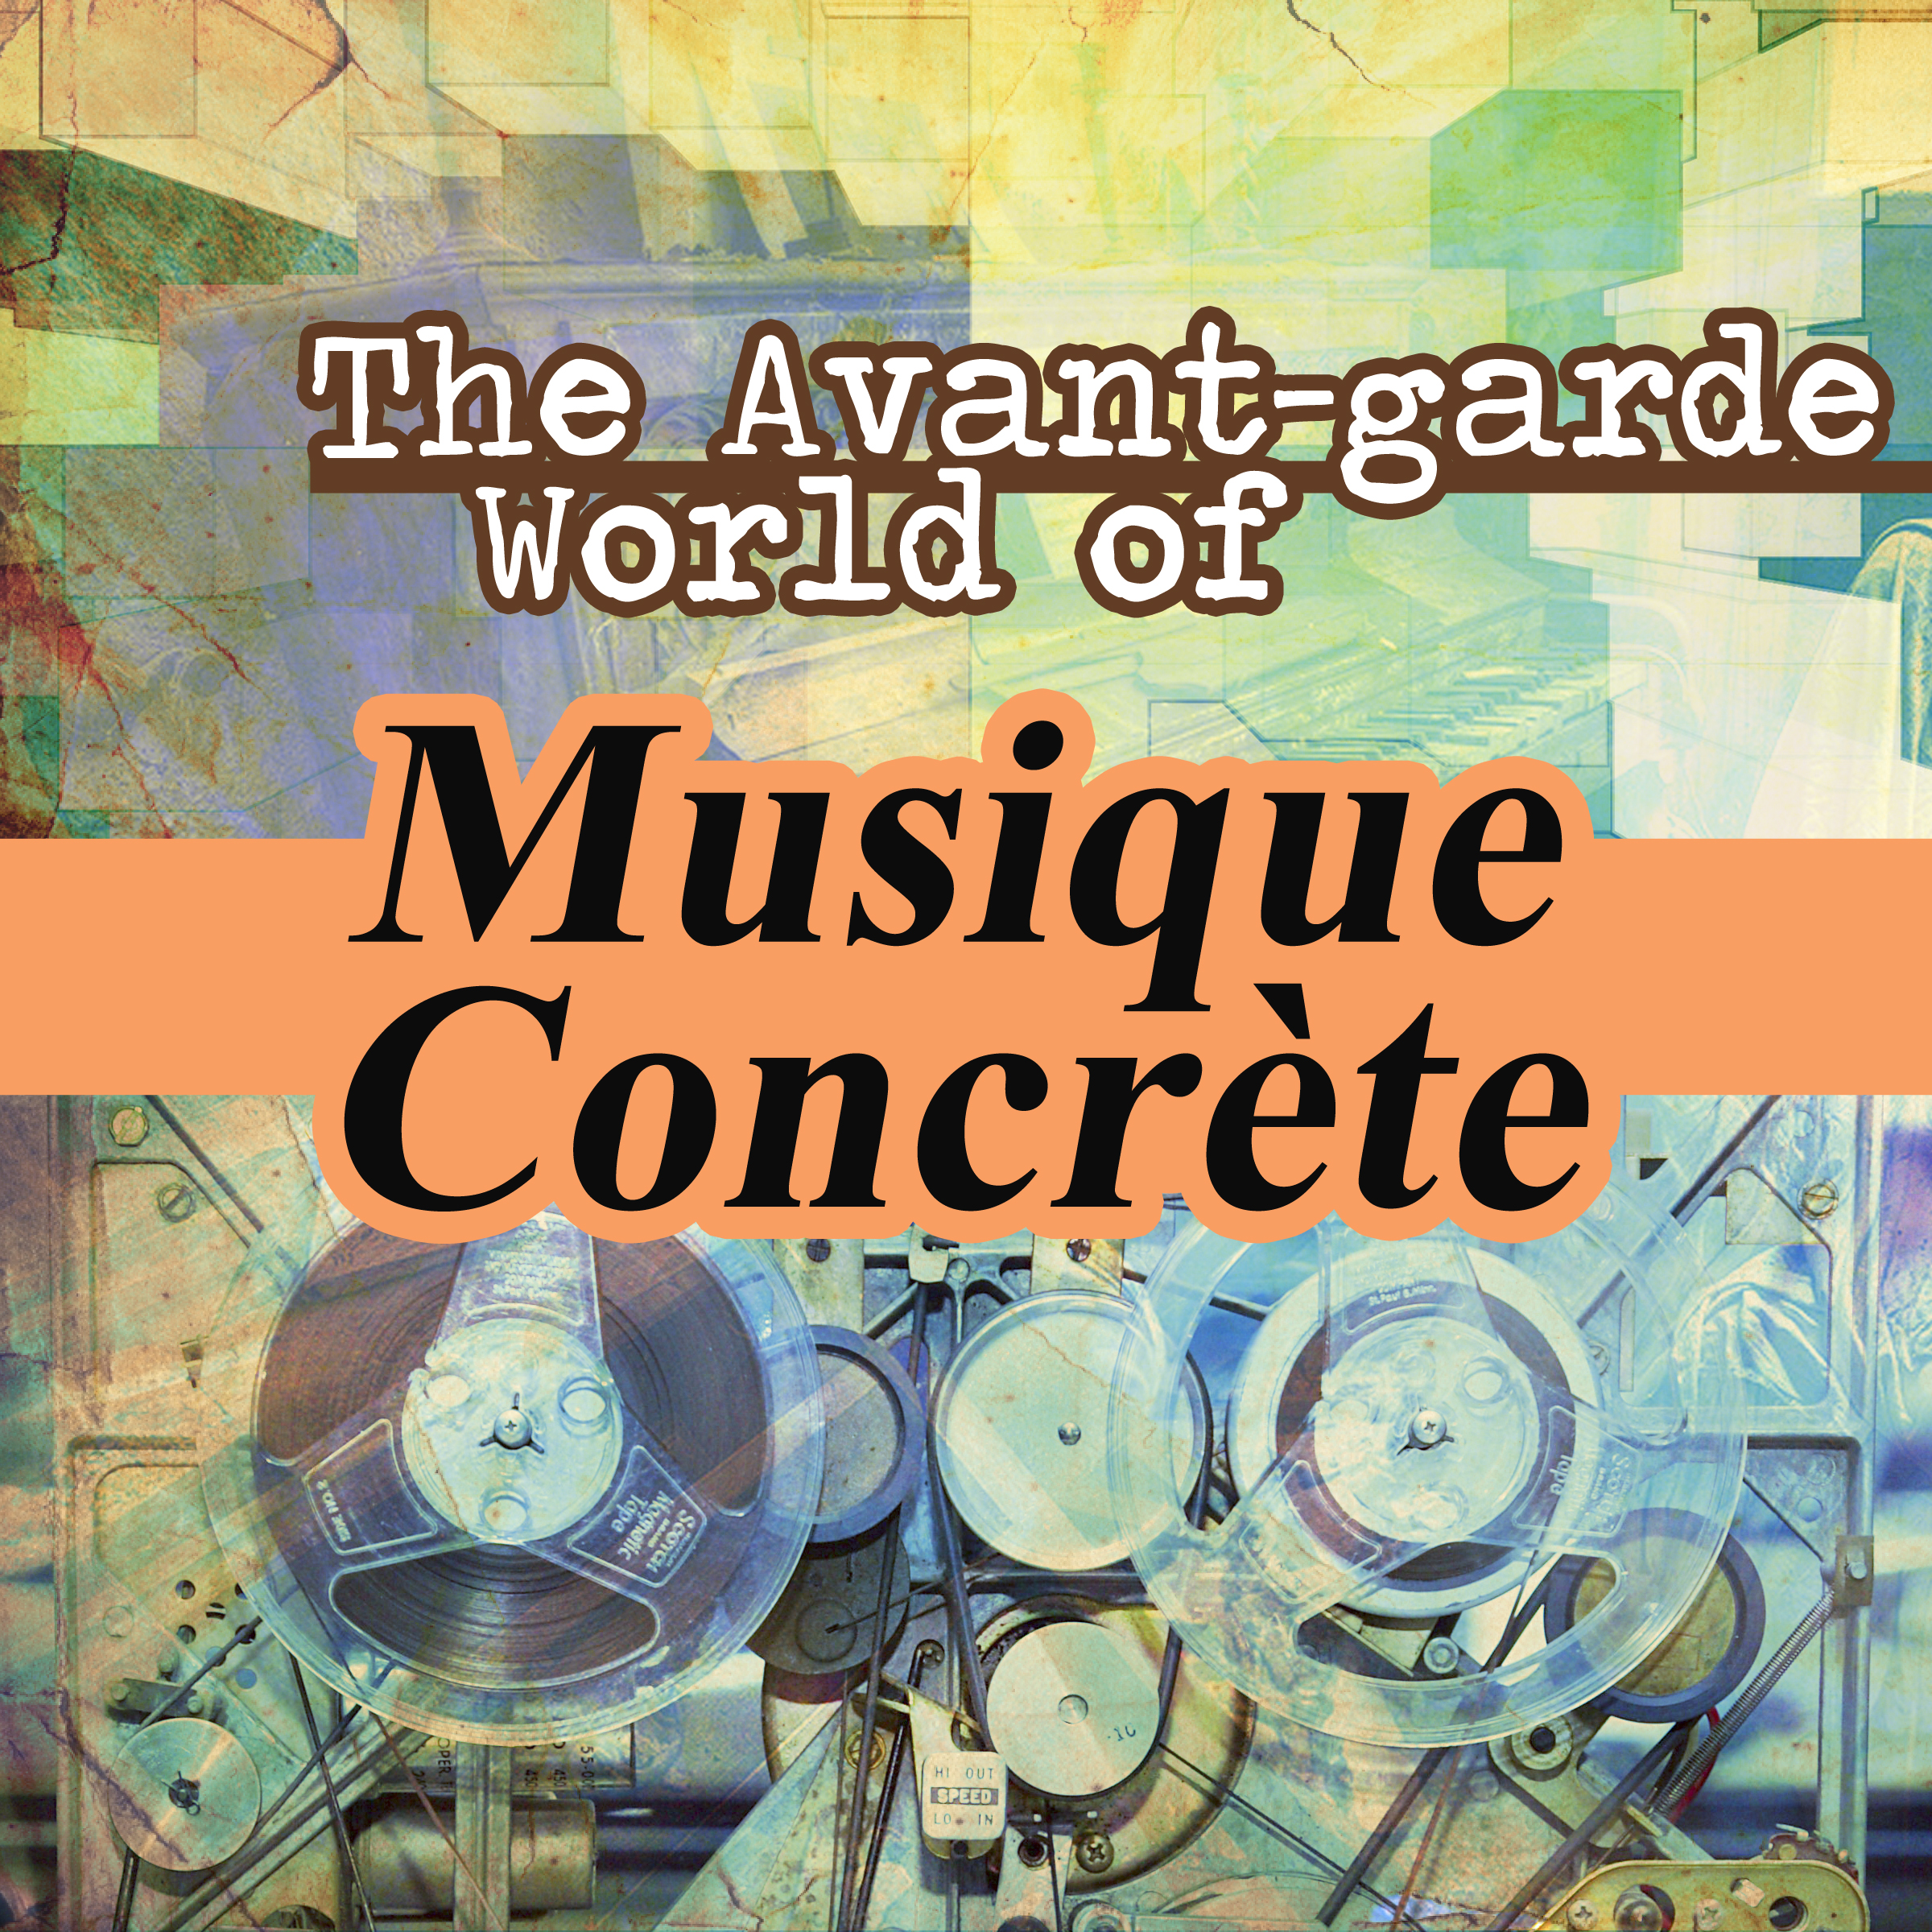 The Avant-garde World of Musique Concrète